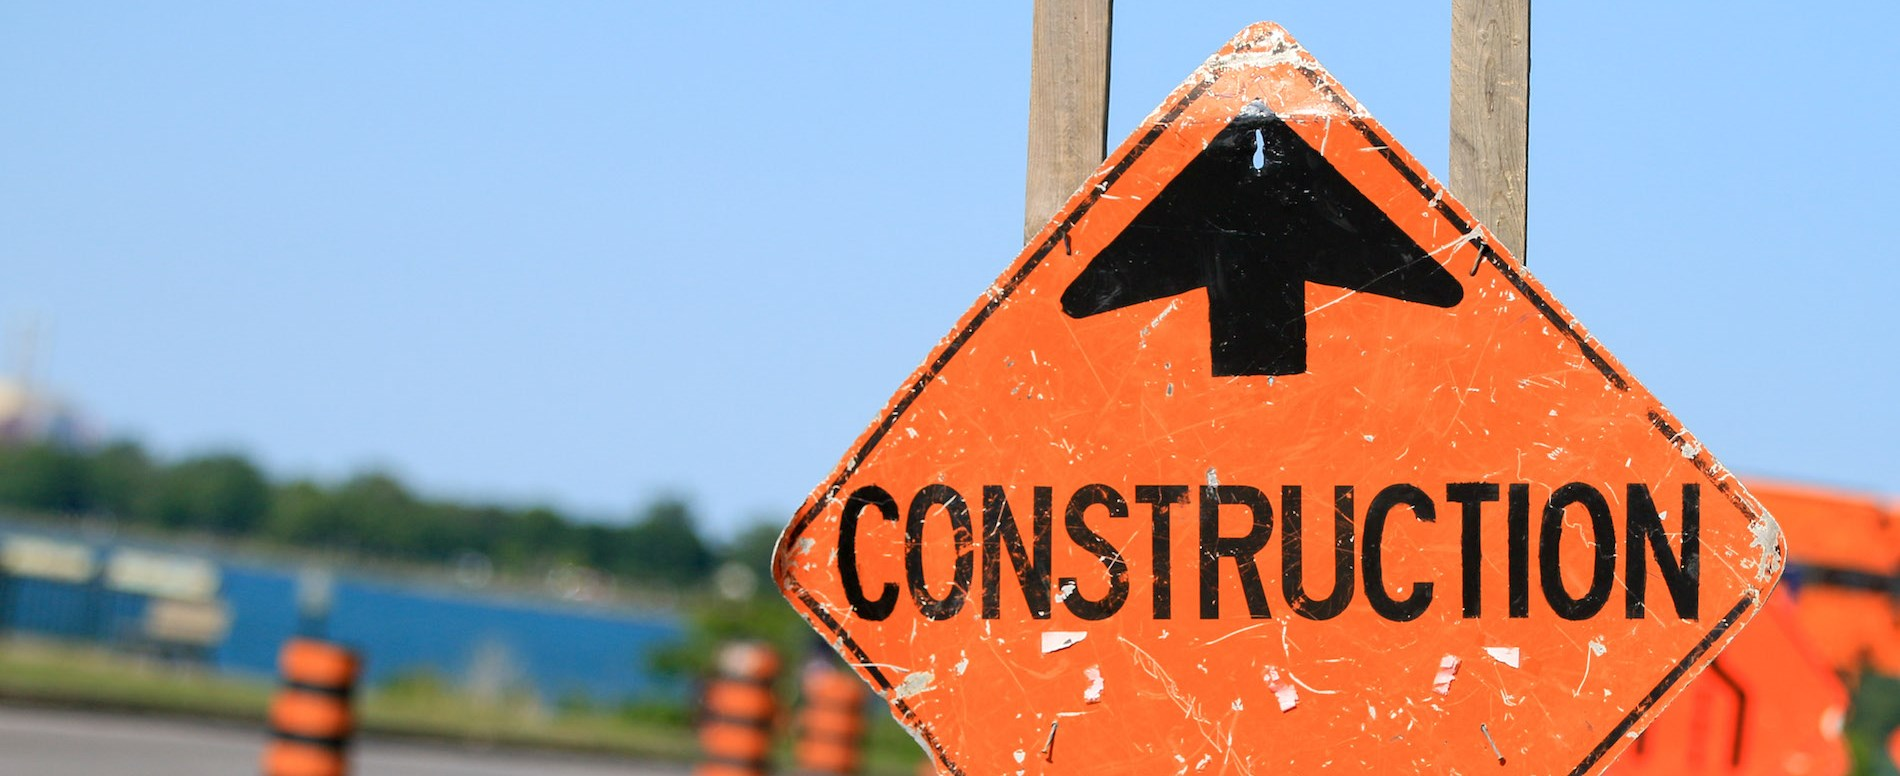 construction sign on road